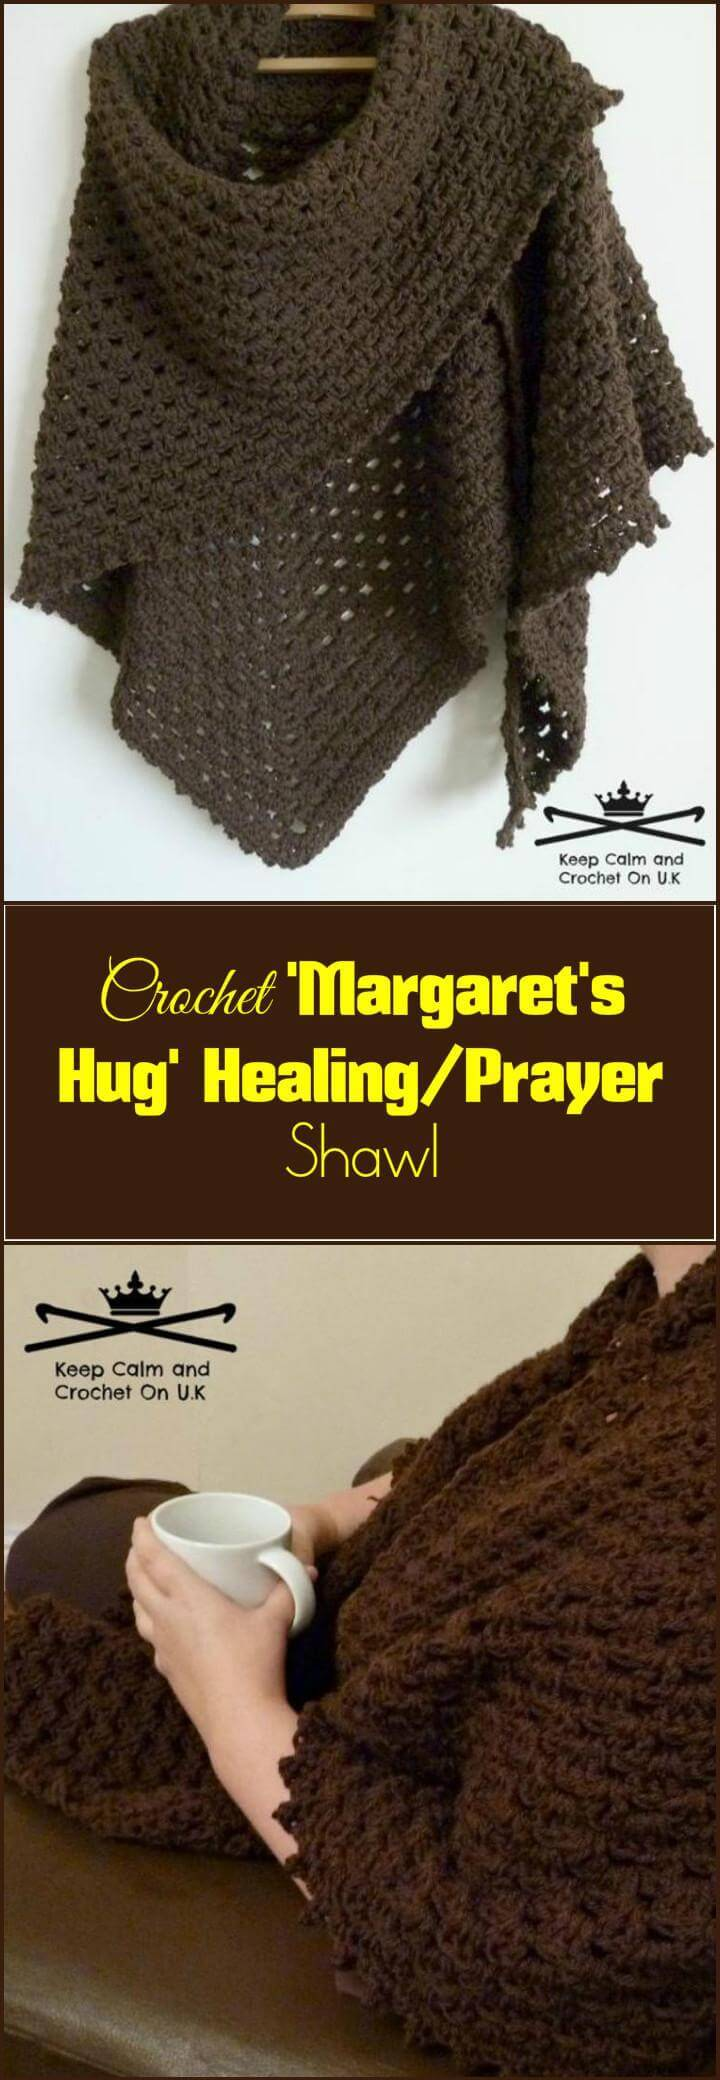 free crochet healing or prayer shawl pattern